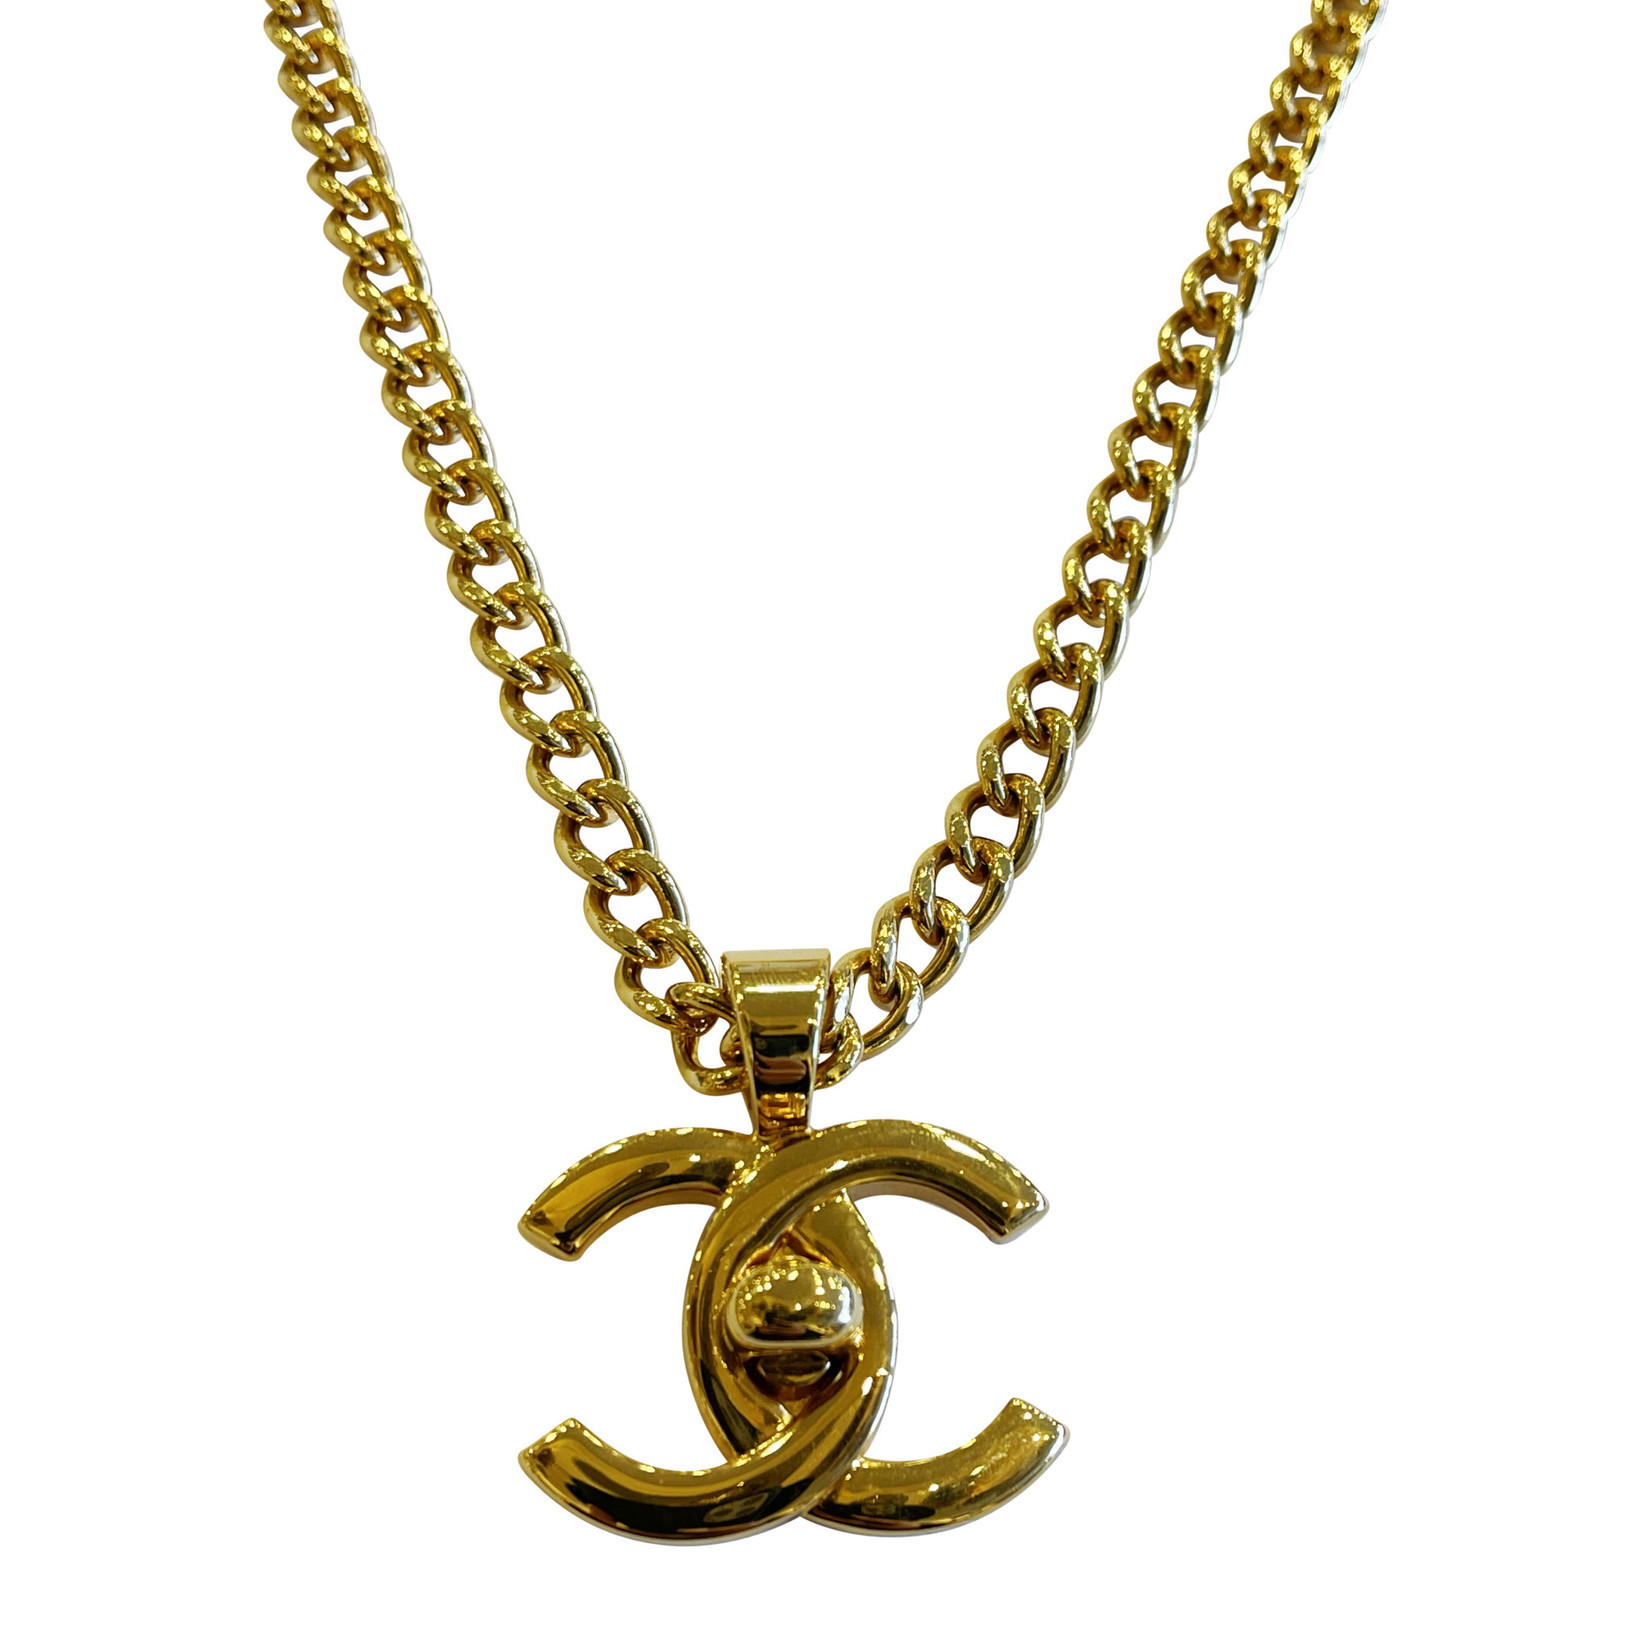 Wyld Blue Vintage Chanel Turnlock Pendant Necklace 2